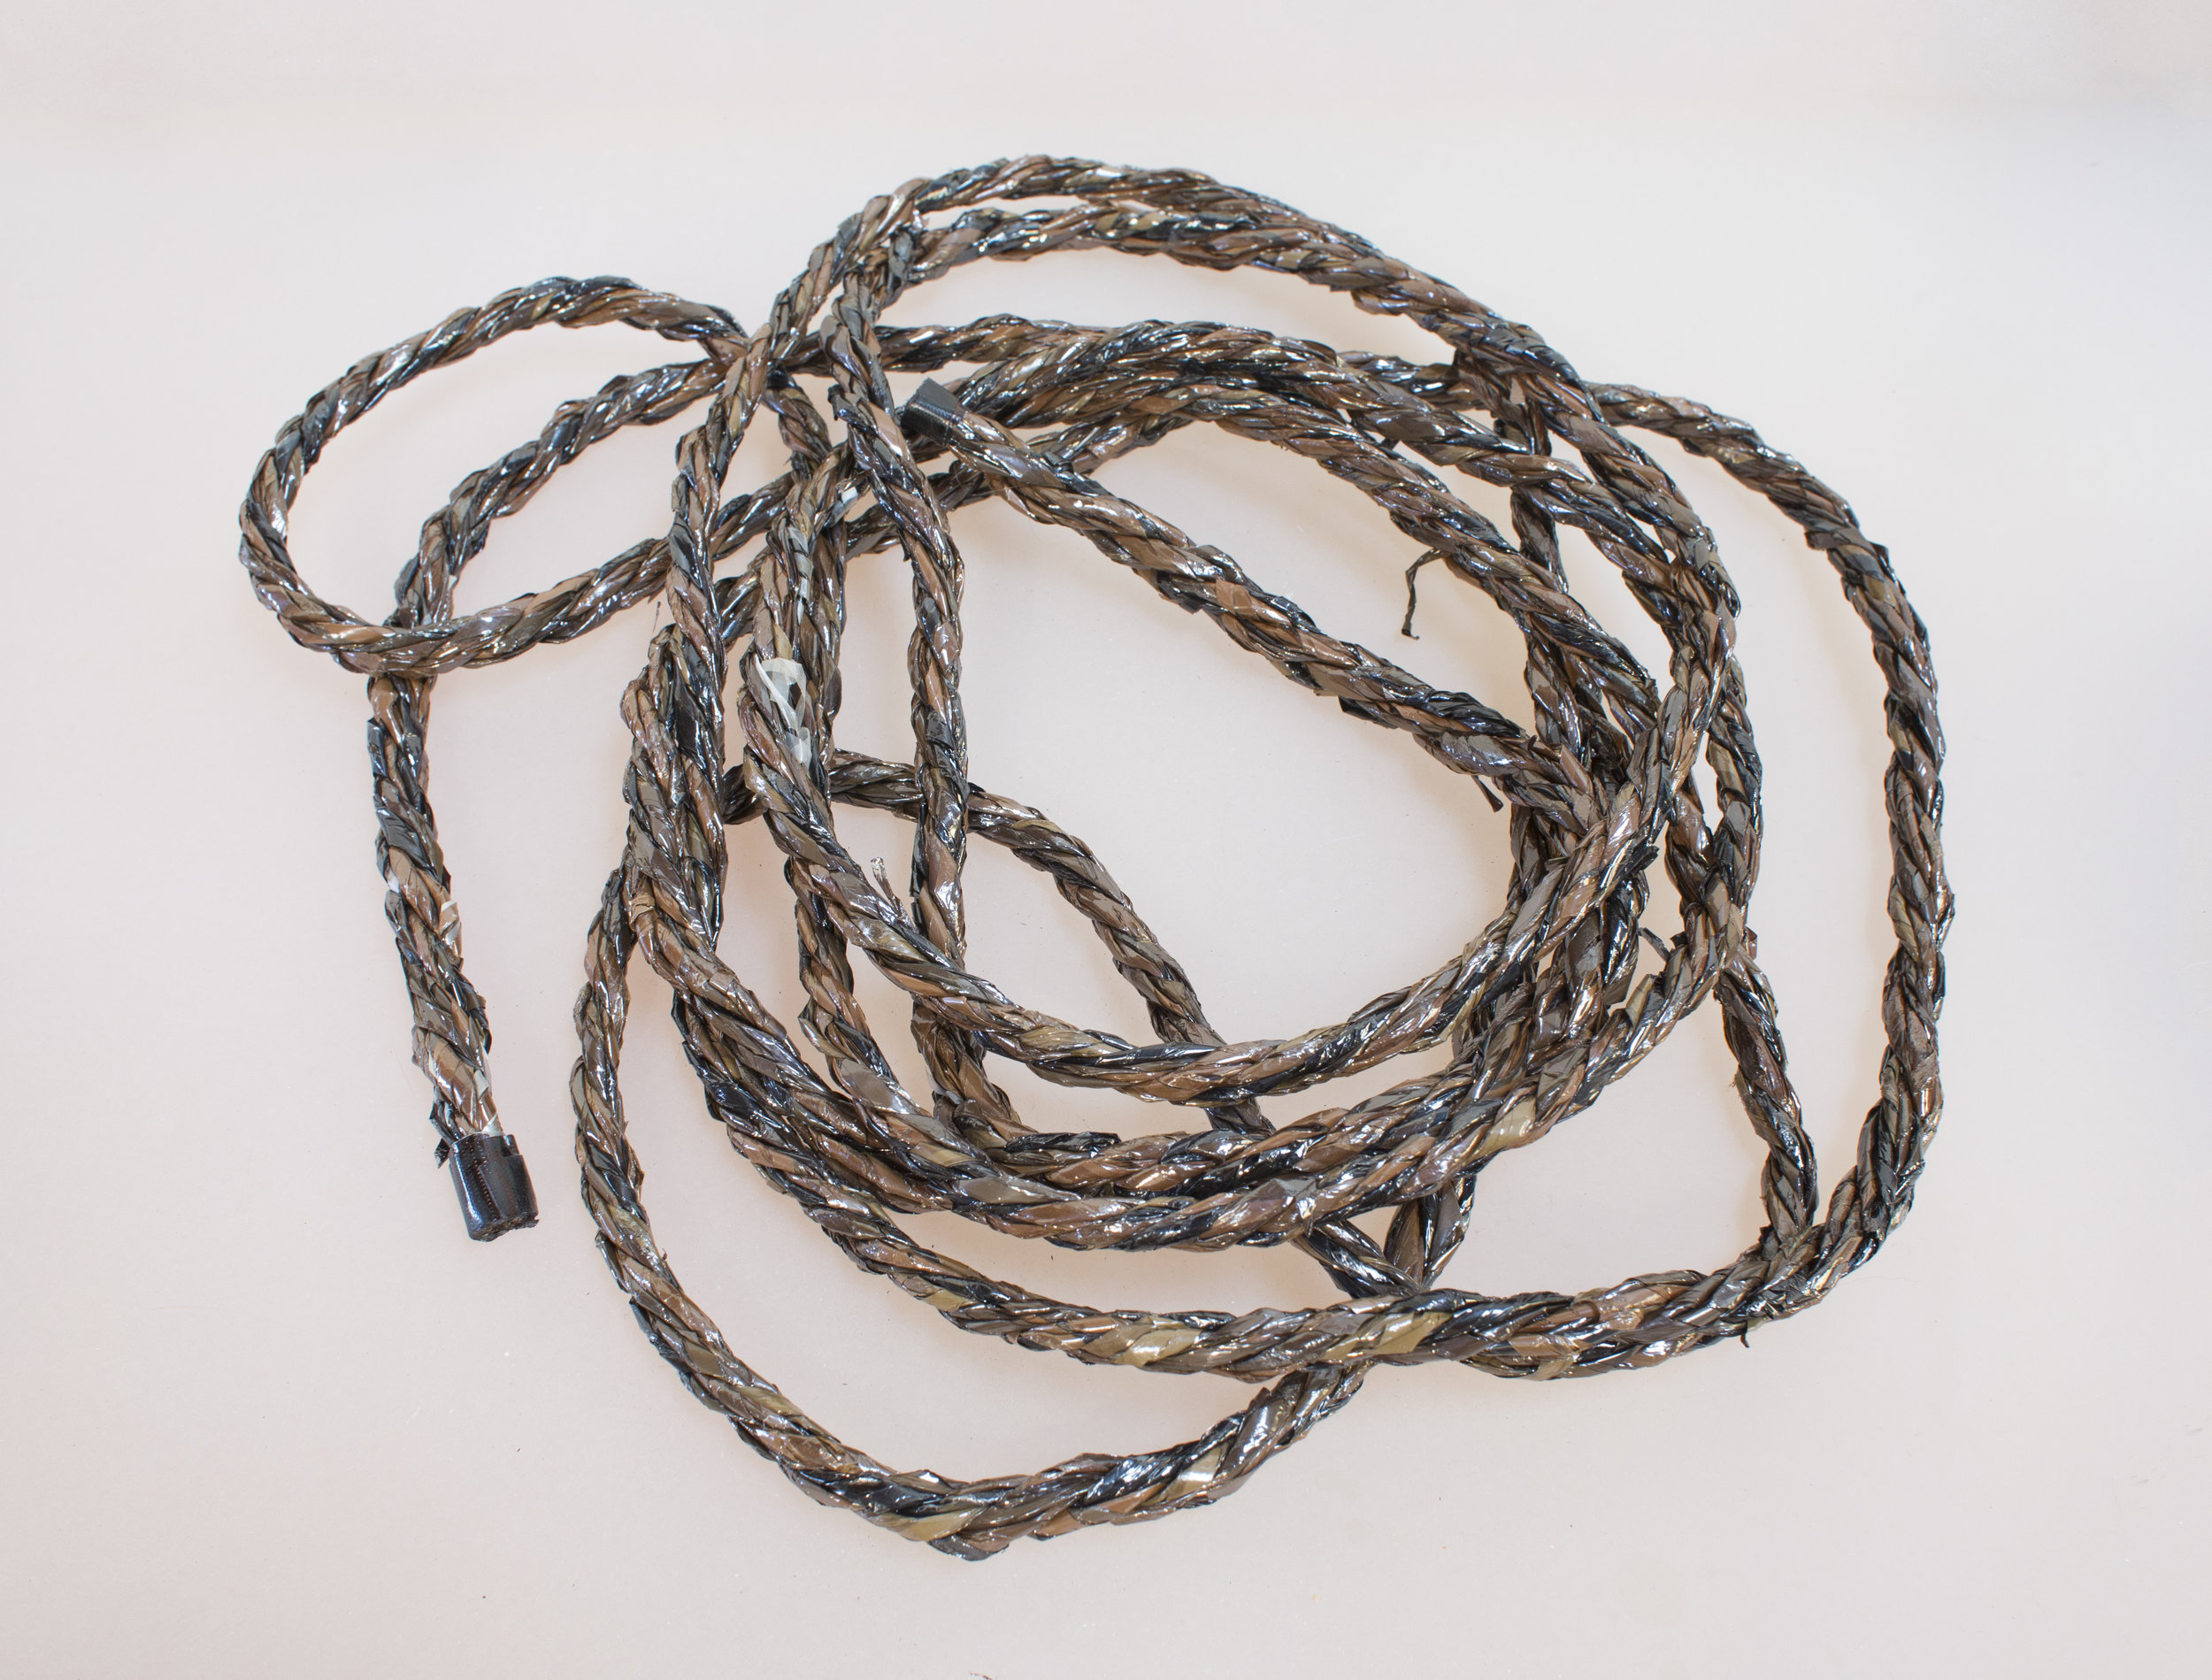 audio tape rope.jpg